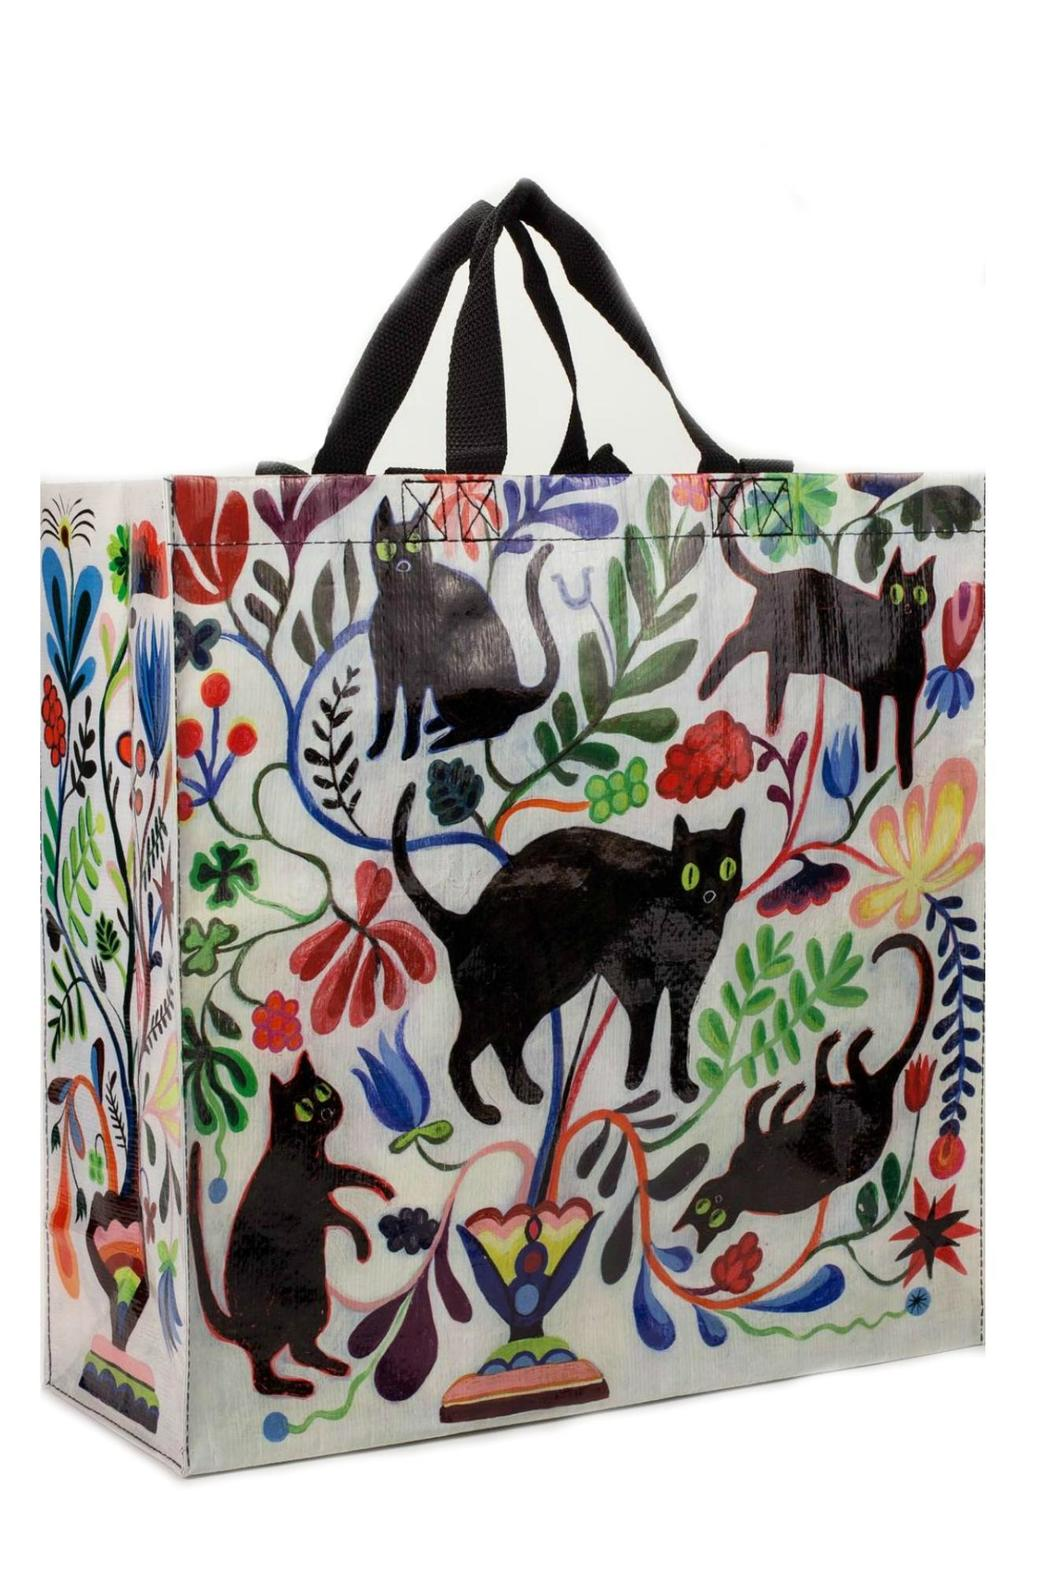 720f0dc837 Blue Q Here Kitty Shopper Bag from Oregon by Copper Creek Mercantile ...